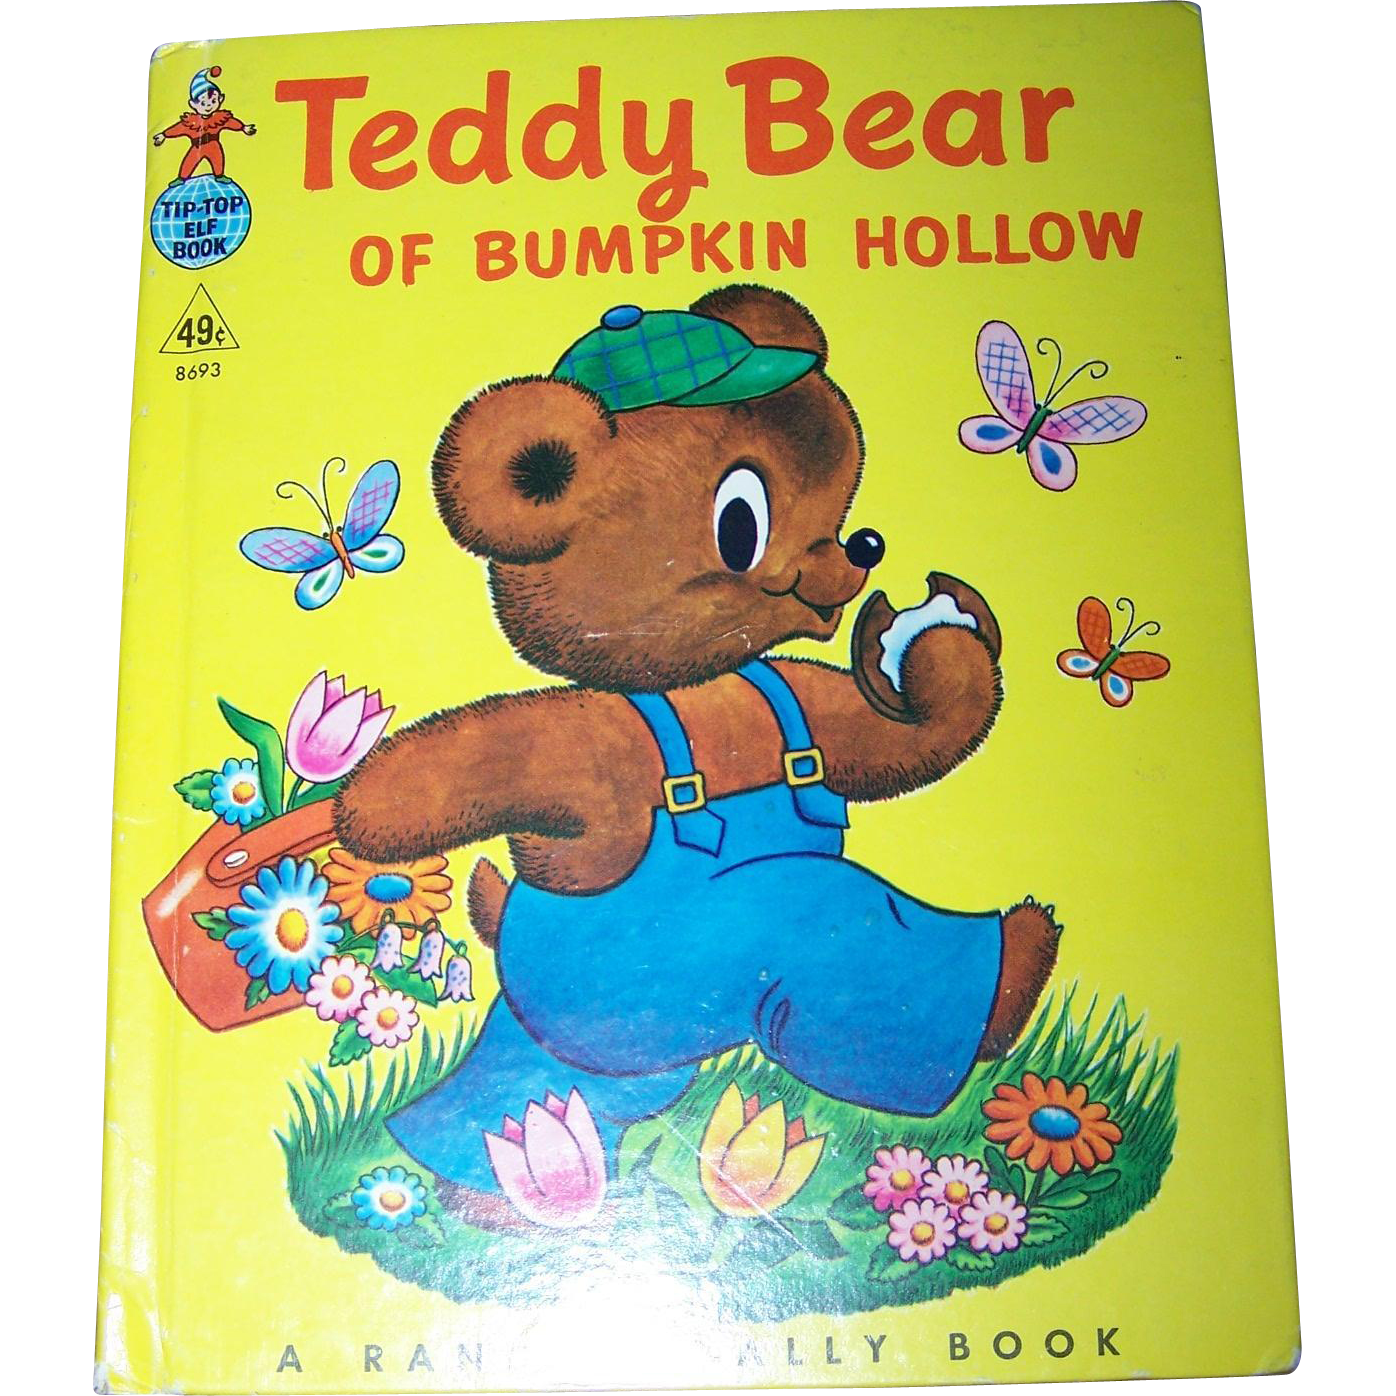 """ Teddy Bear if Bumpkin Hollow "" Rand McNally Tip Top Elf  Children's Book"